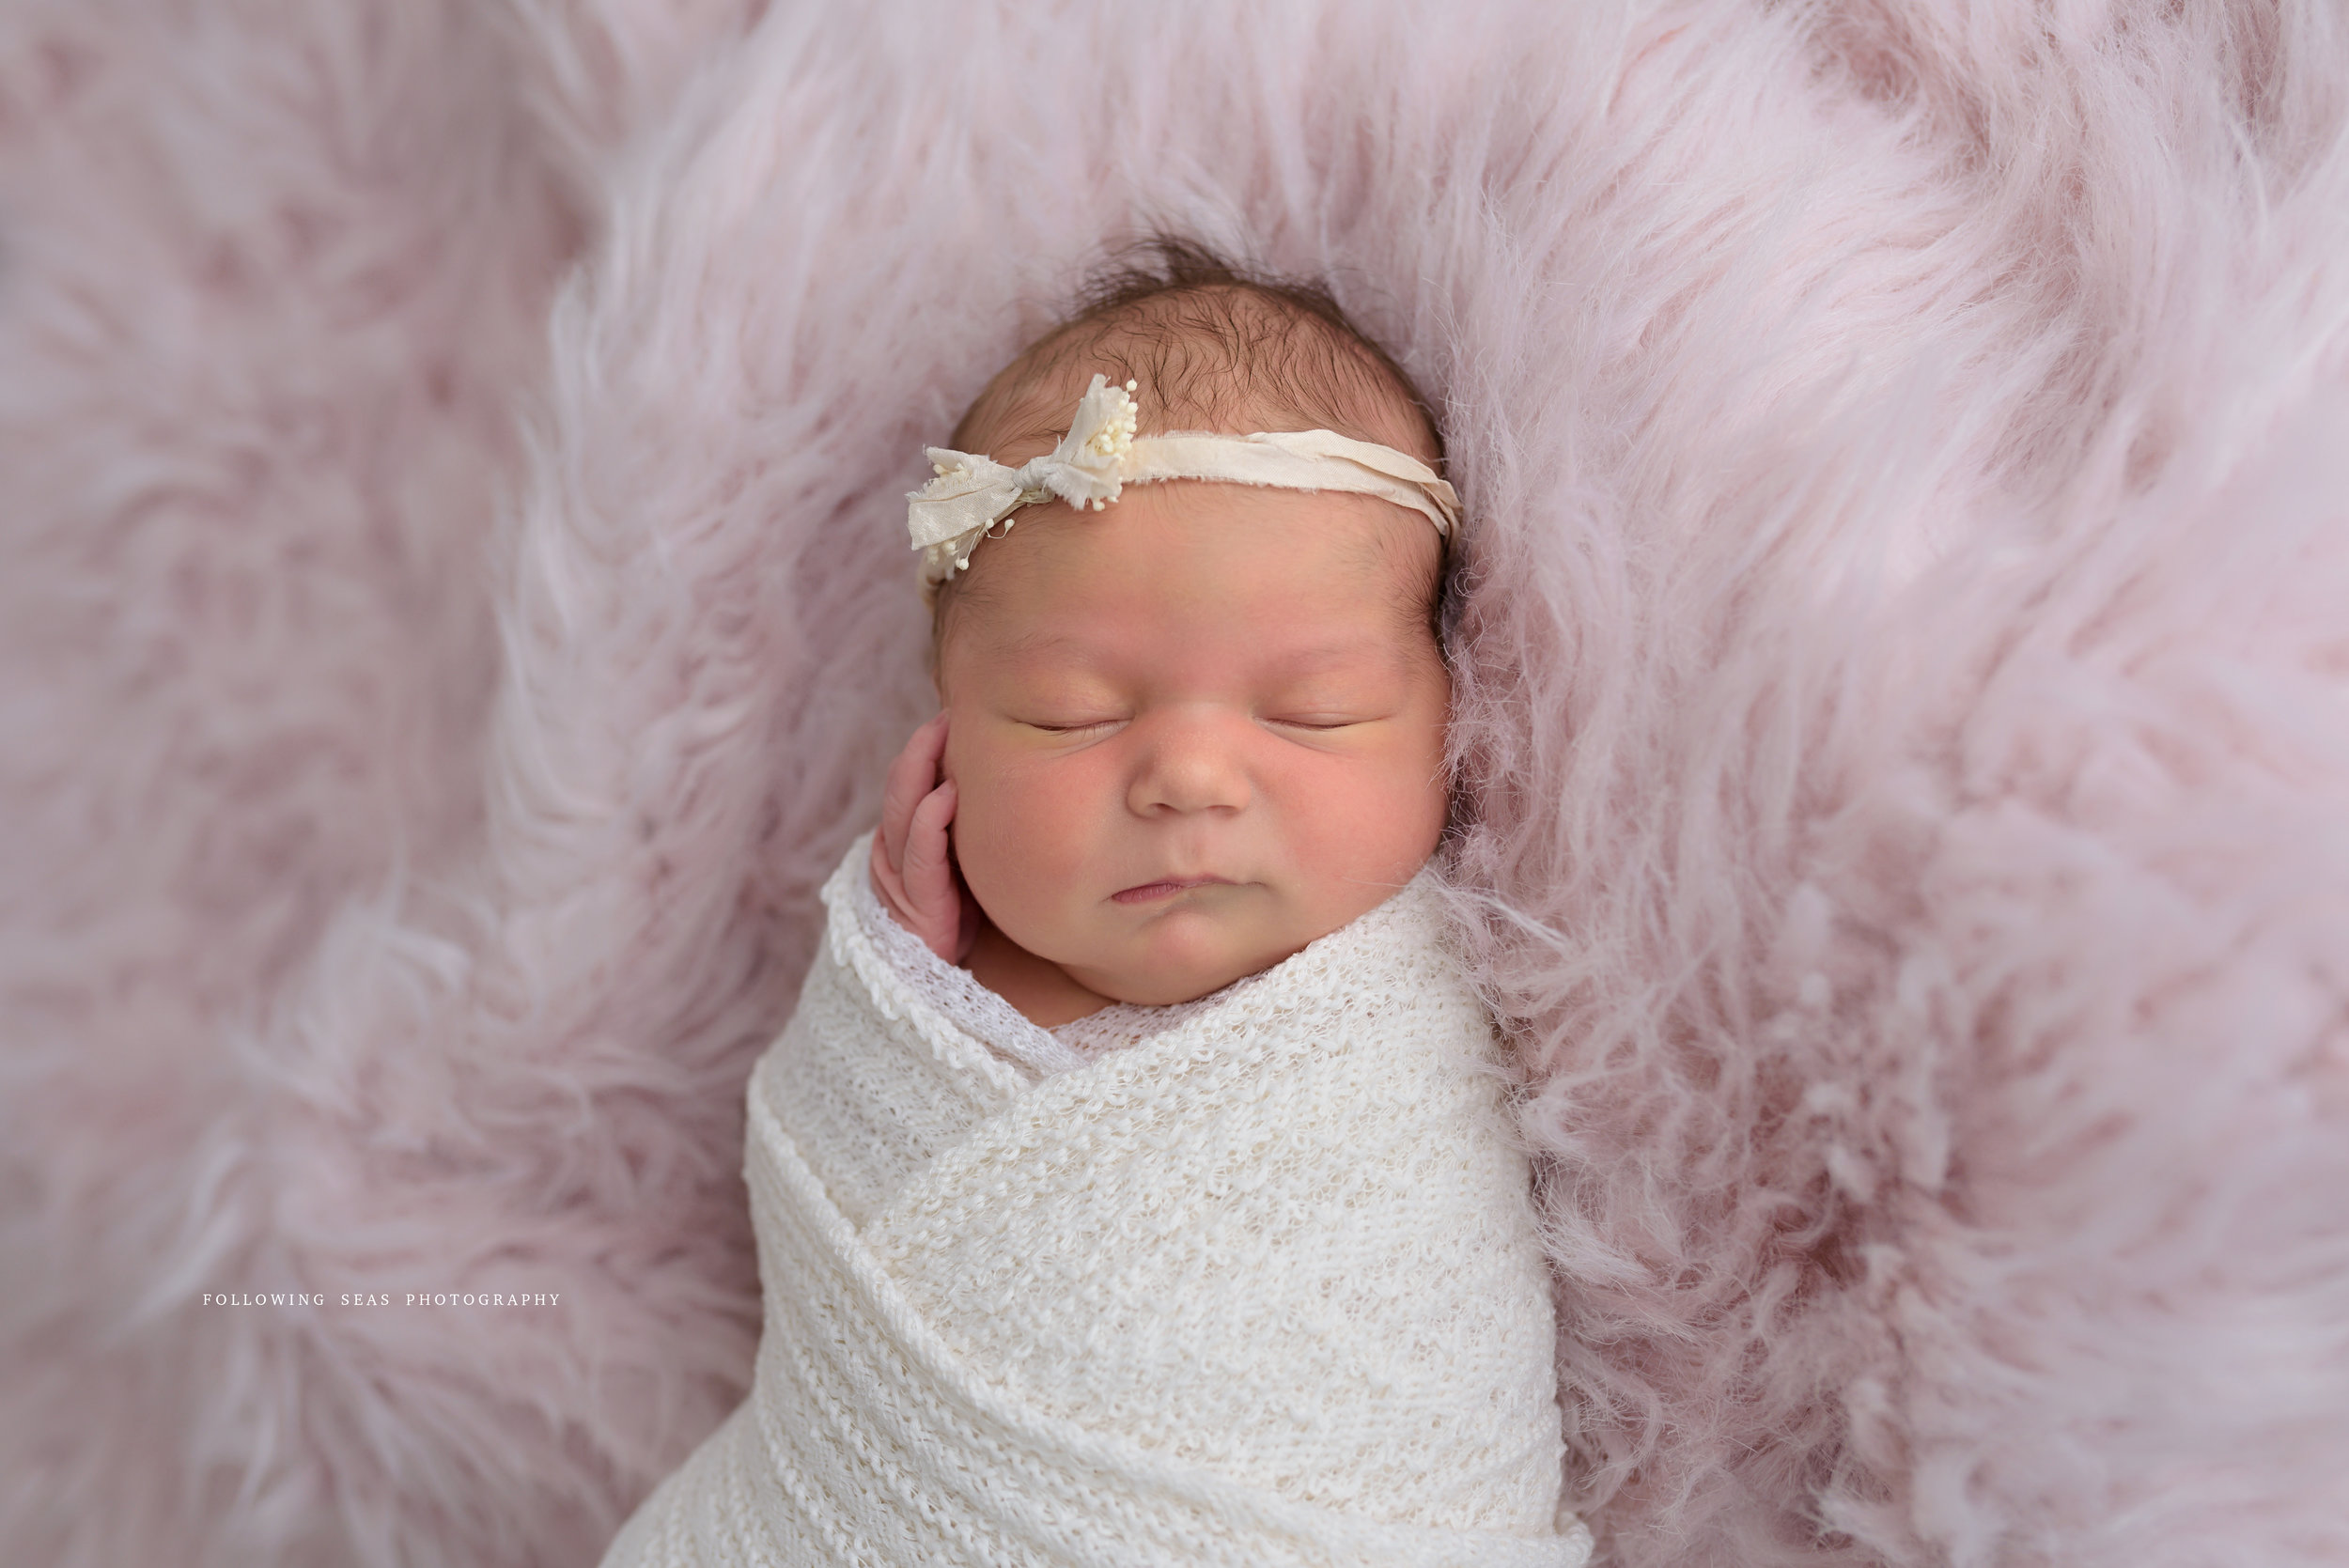 Charleston-Newborn-Photographer-Following-Seas-Photography-5188.jpg